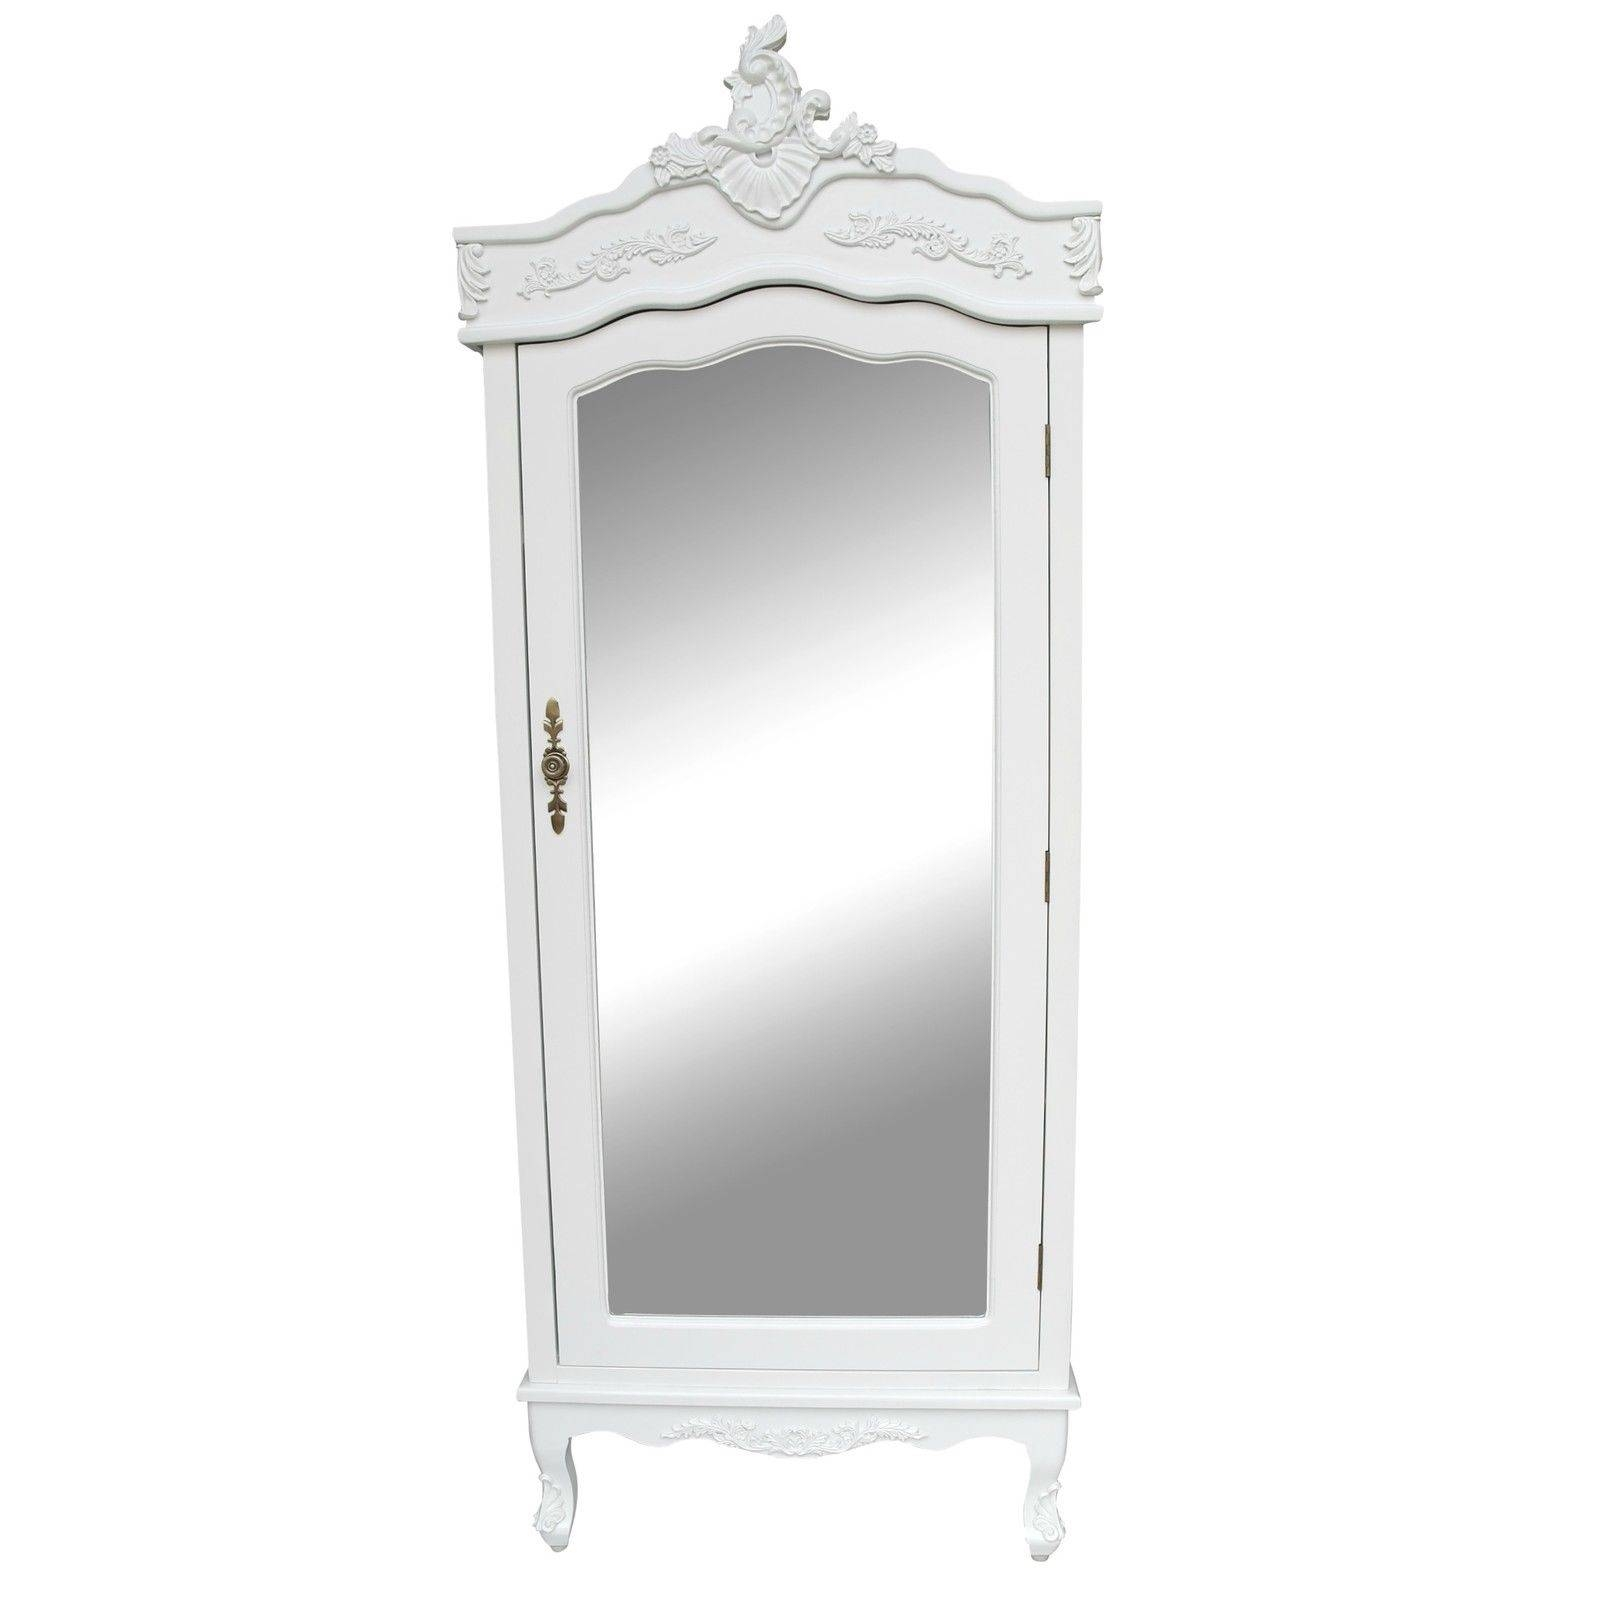 French White Single Door Armoire With Mirrored Door Furniture - La intended for Single White Wardrobes With Mirror (Image 3 of 15)